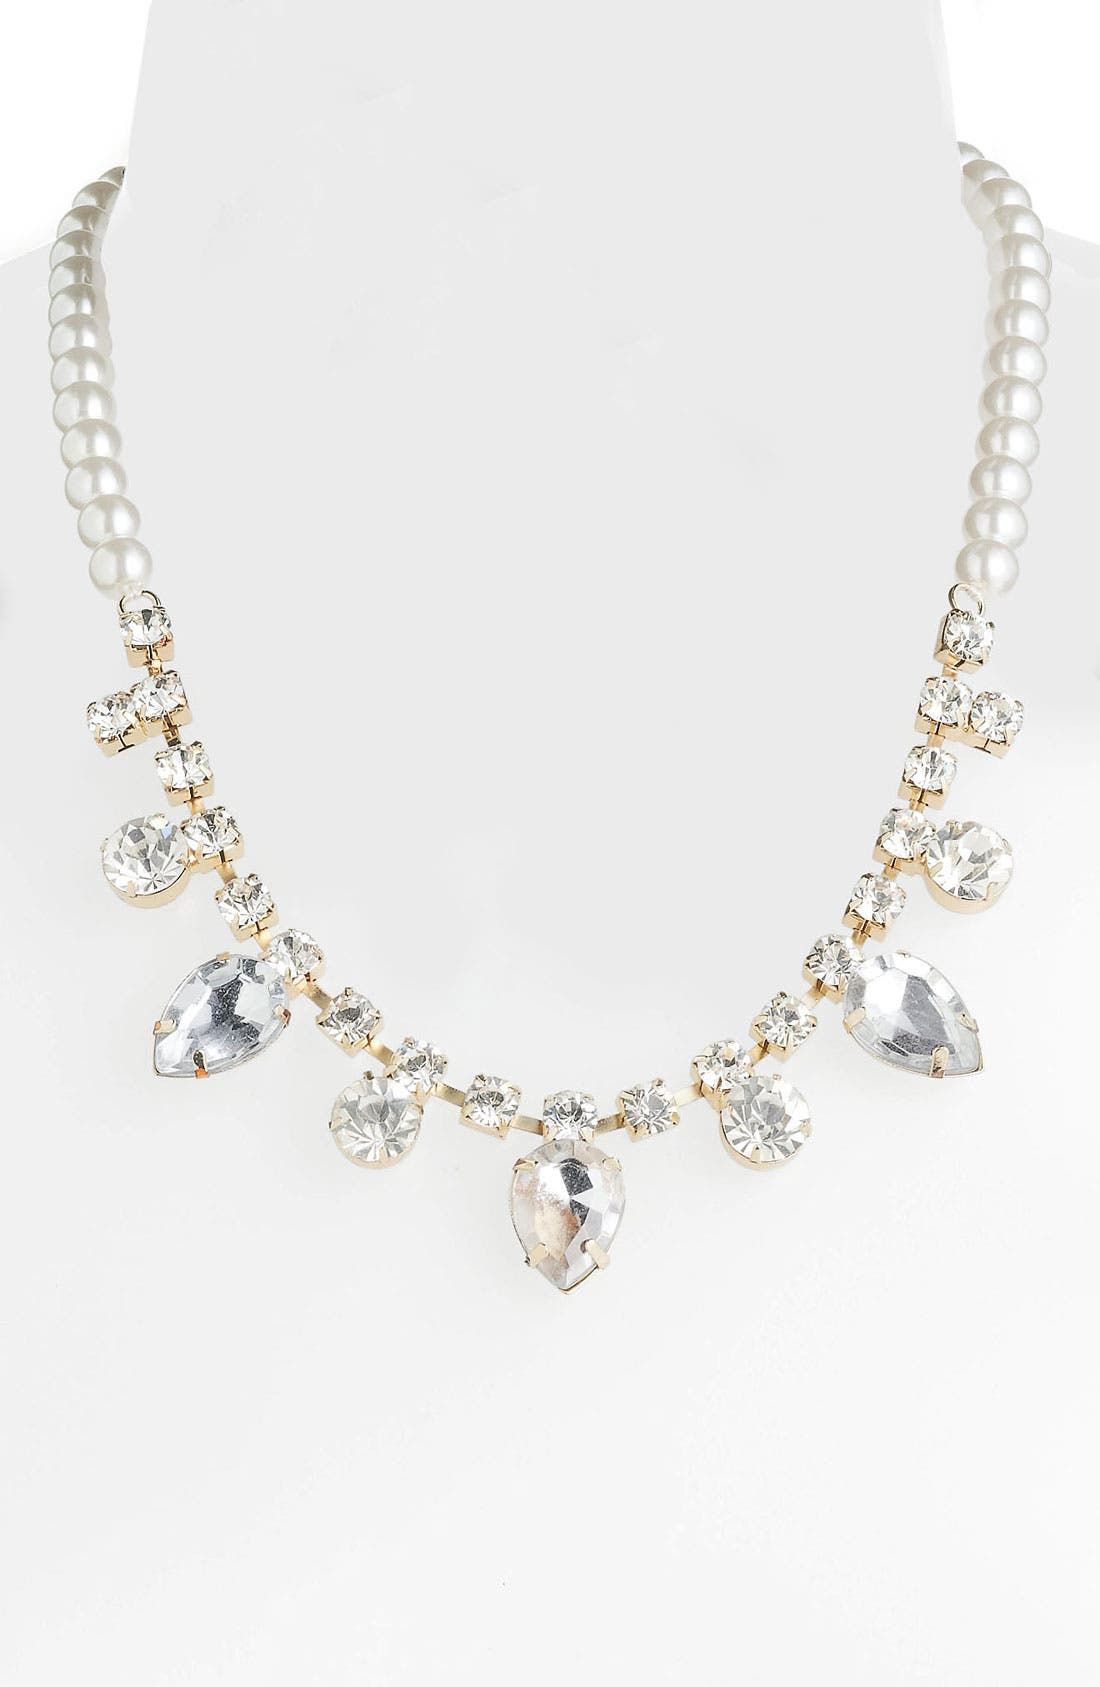 Alternate Image 1 Selected - Stephan & Co. Rhinestone & Faux Pearl Necklace